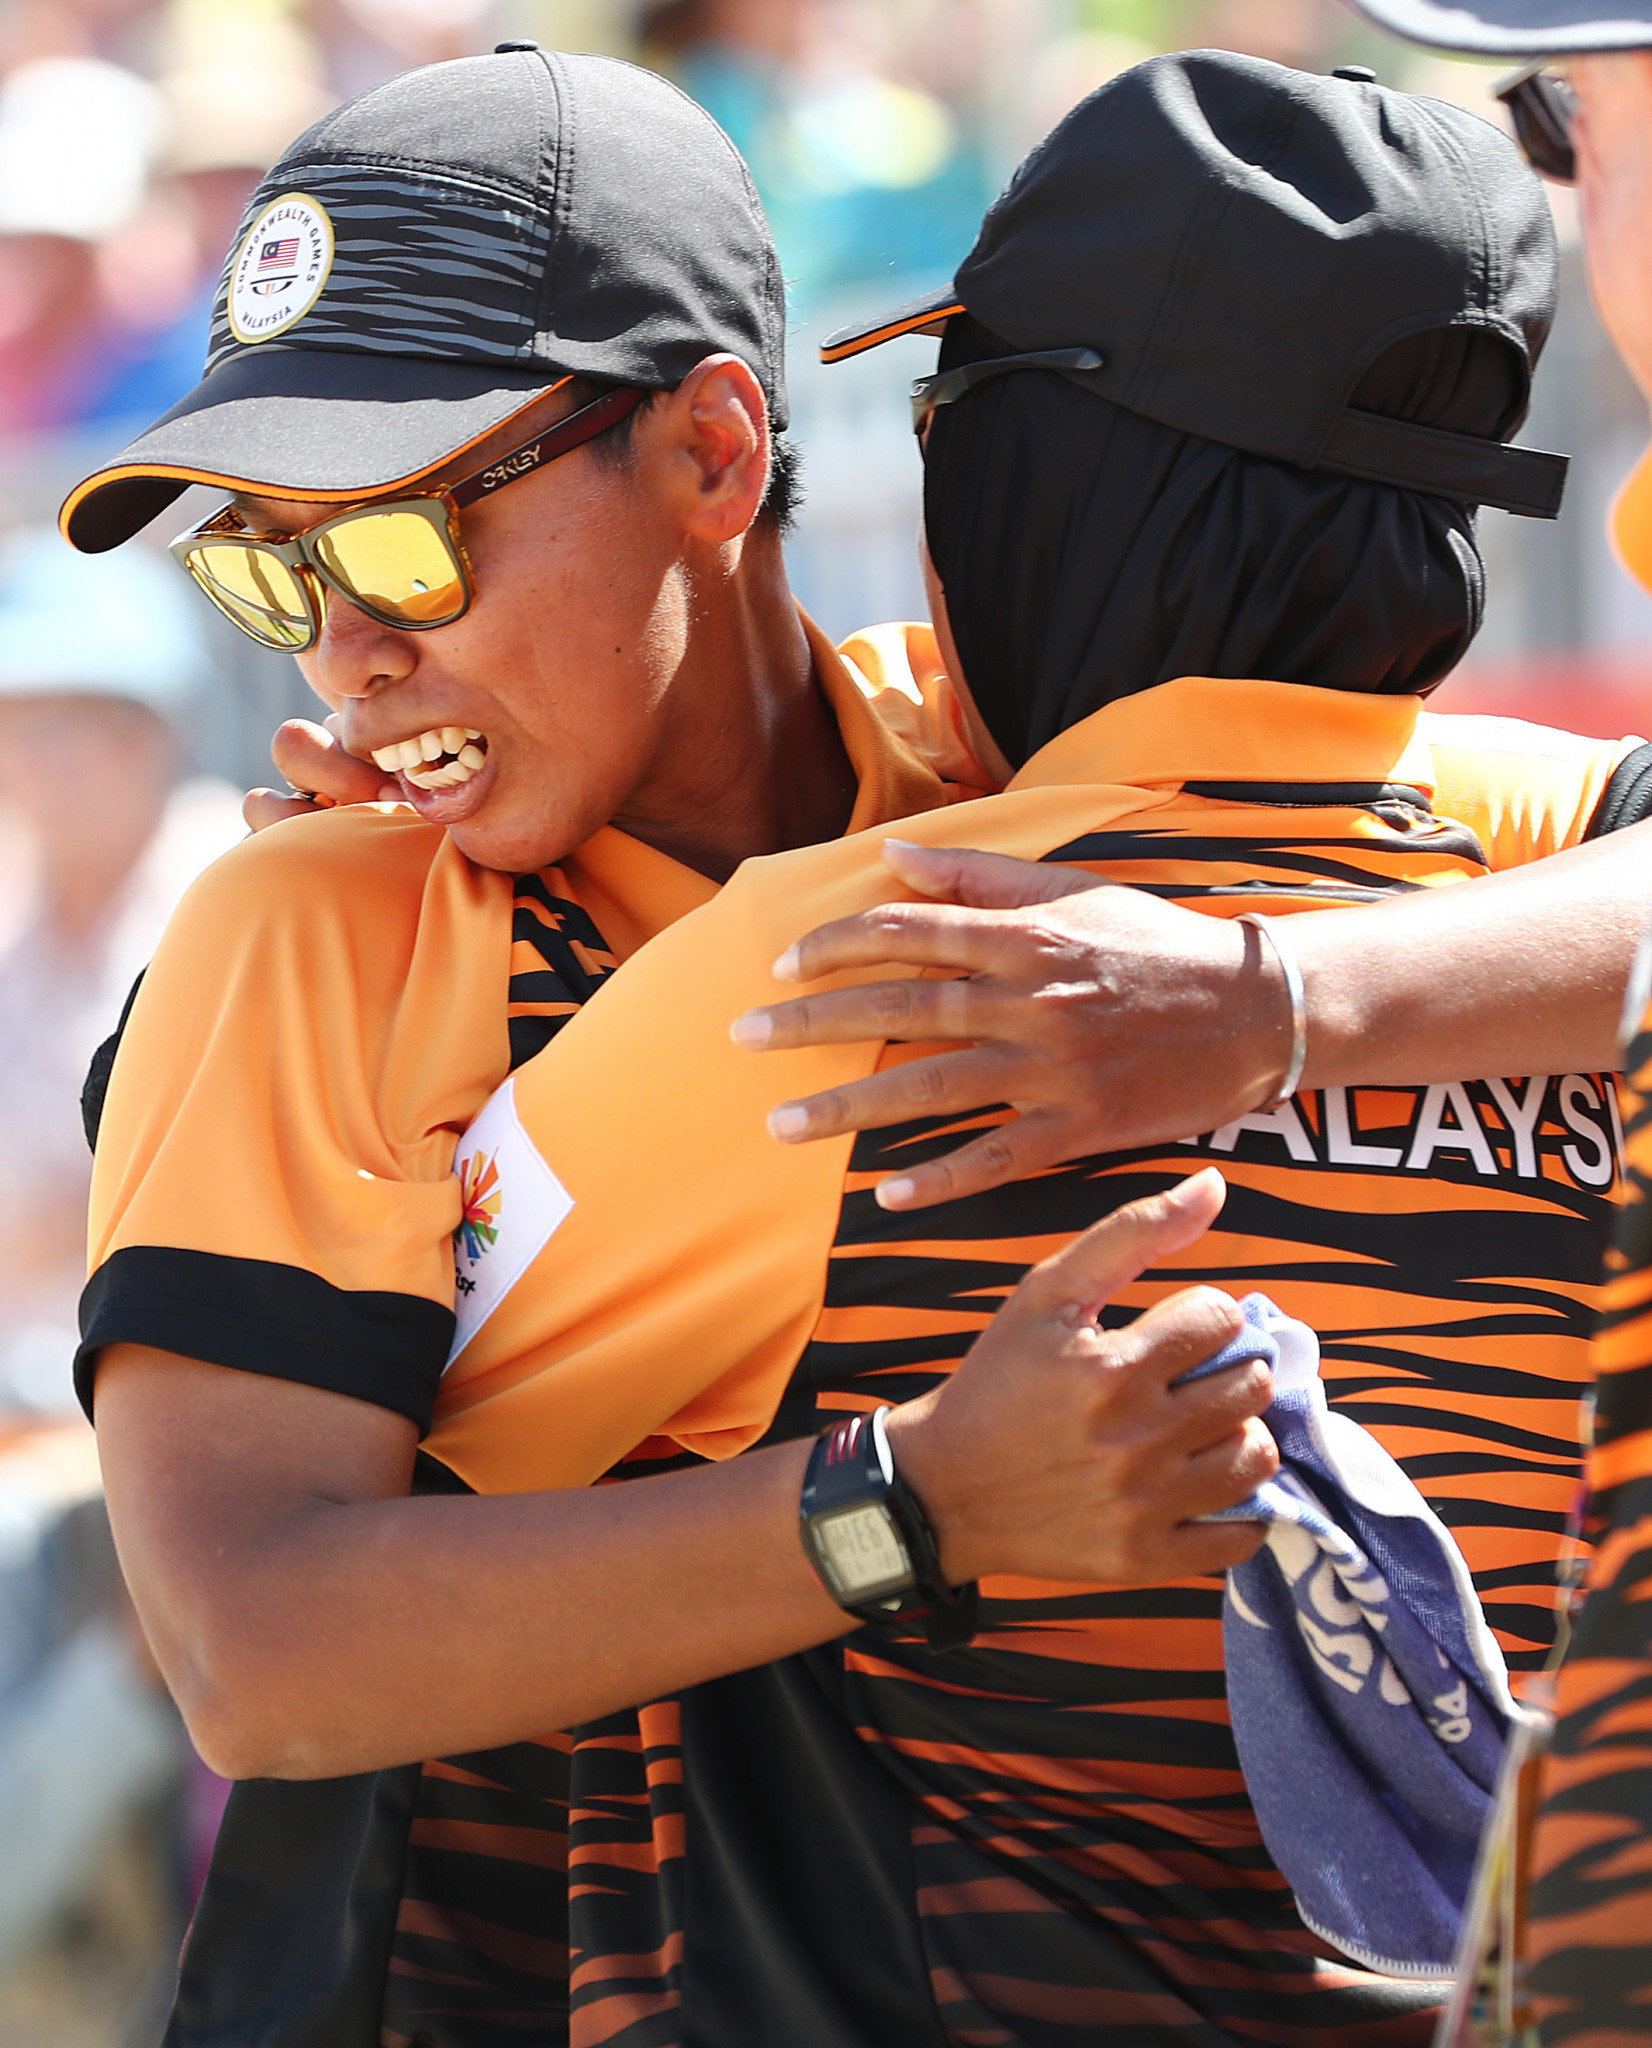 Malaysia's Siti Zalina Ahmad continued her good form in the women's singles ©Getty Images